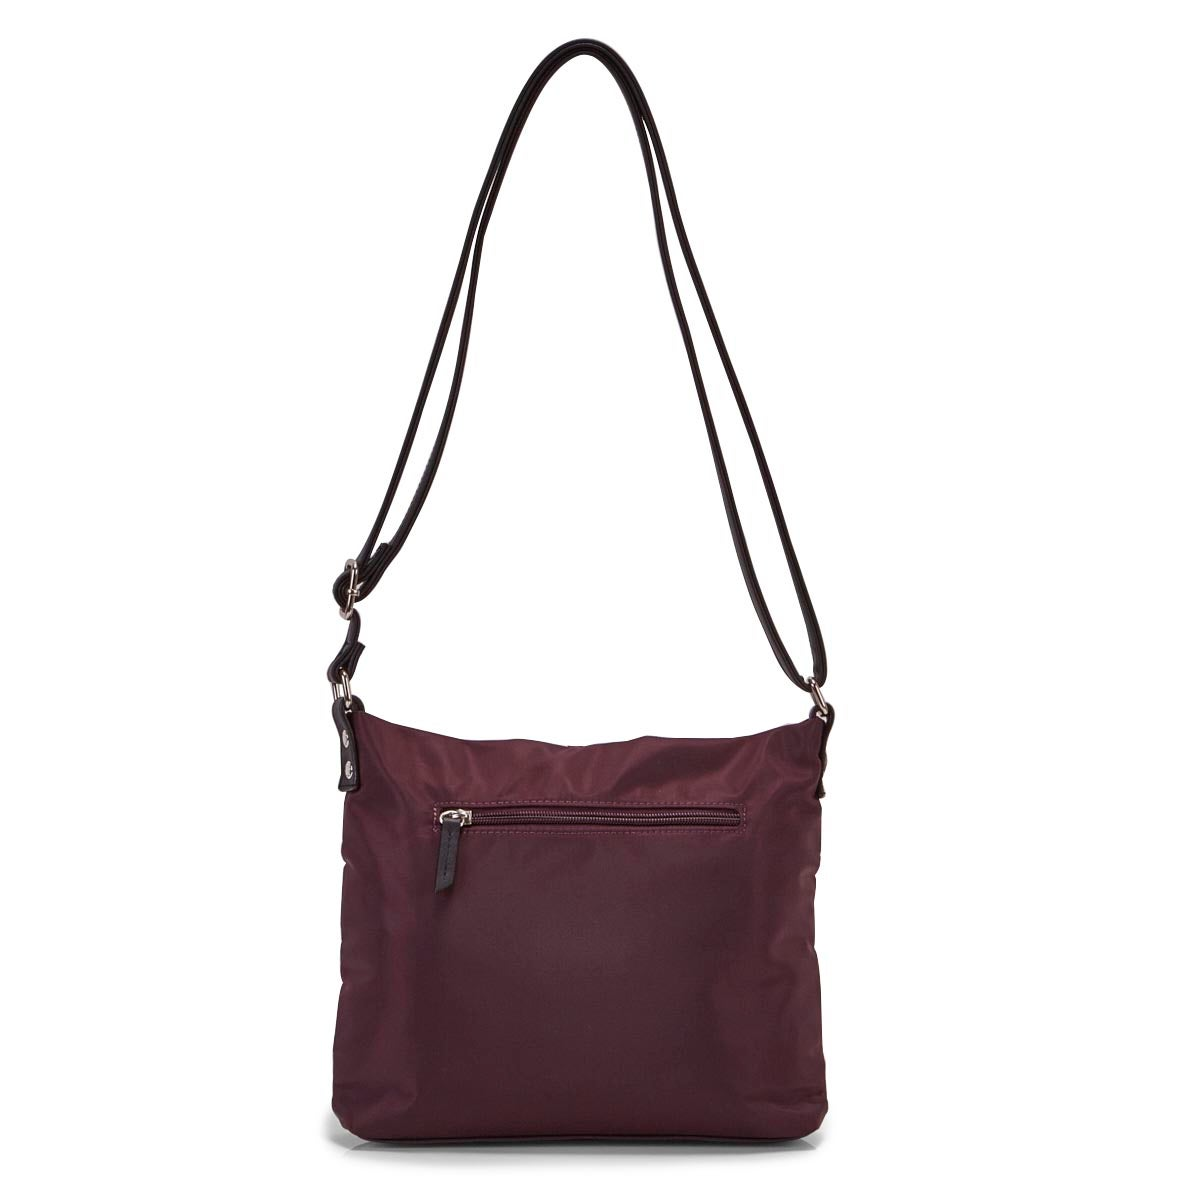 Lds Roots73 burgundy top zip crossbody